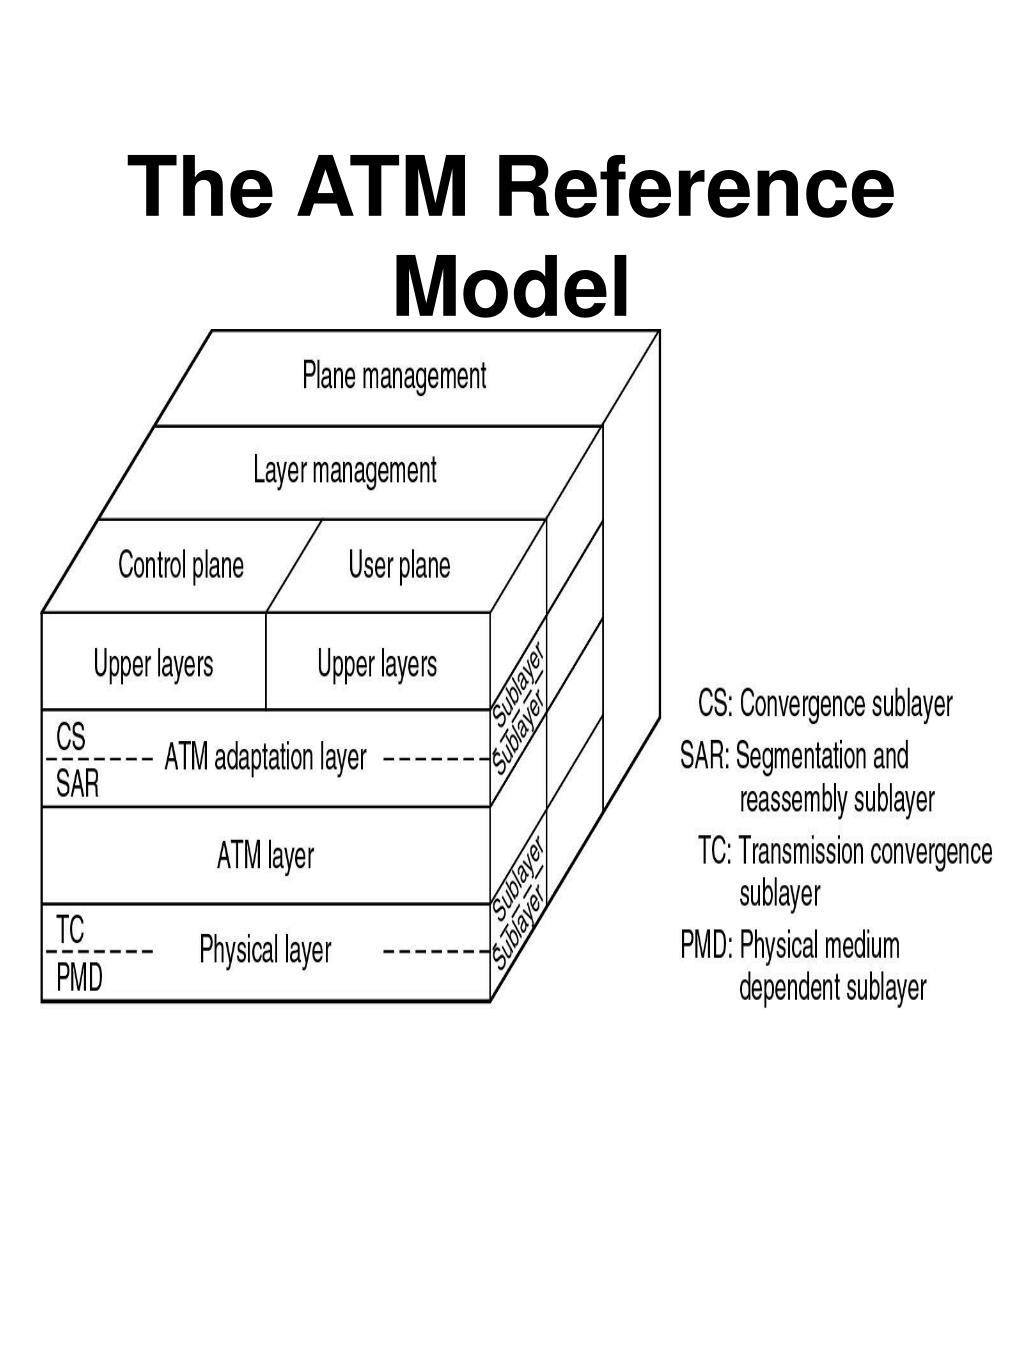 The ATM Reference Model